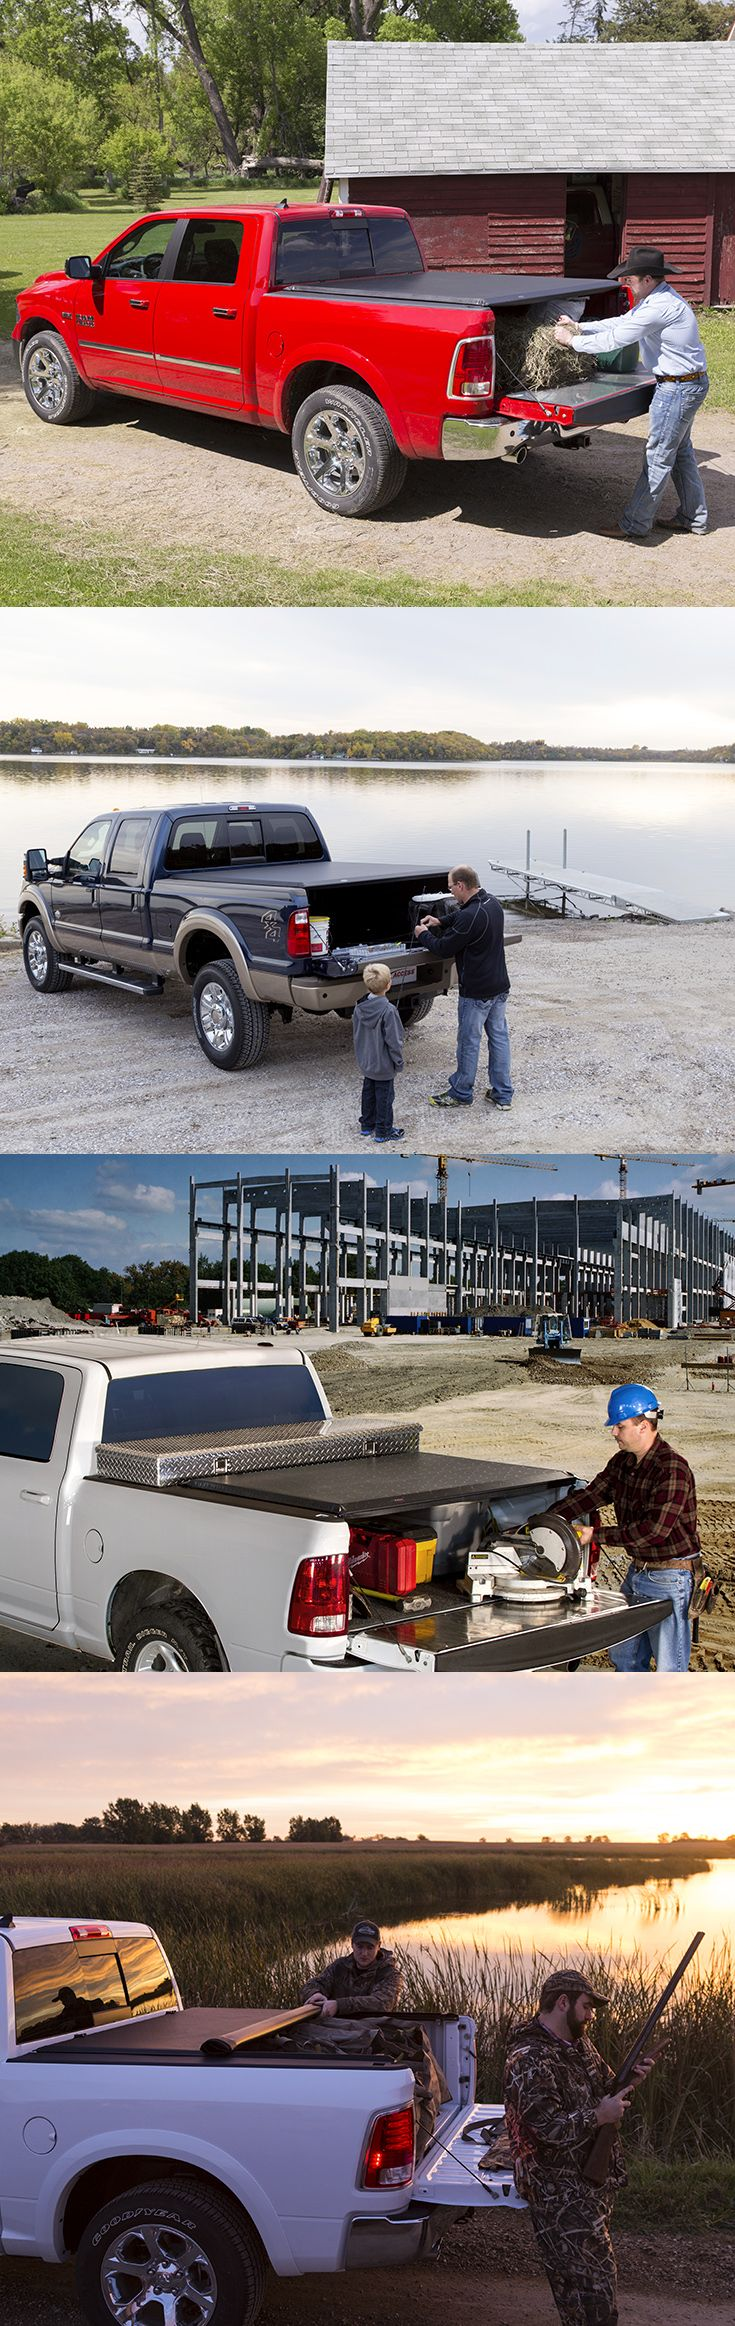 Official site of access roll up tonneau cover access truck bed tonneau covers will help secure your load improve gas mileage and is easy to operate